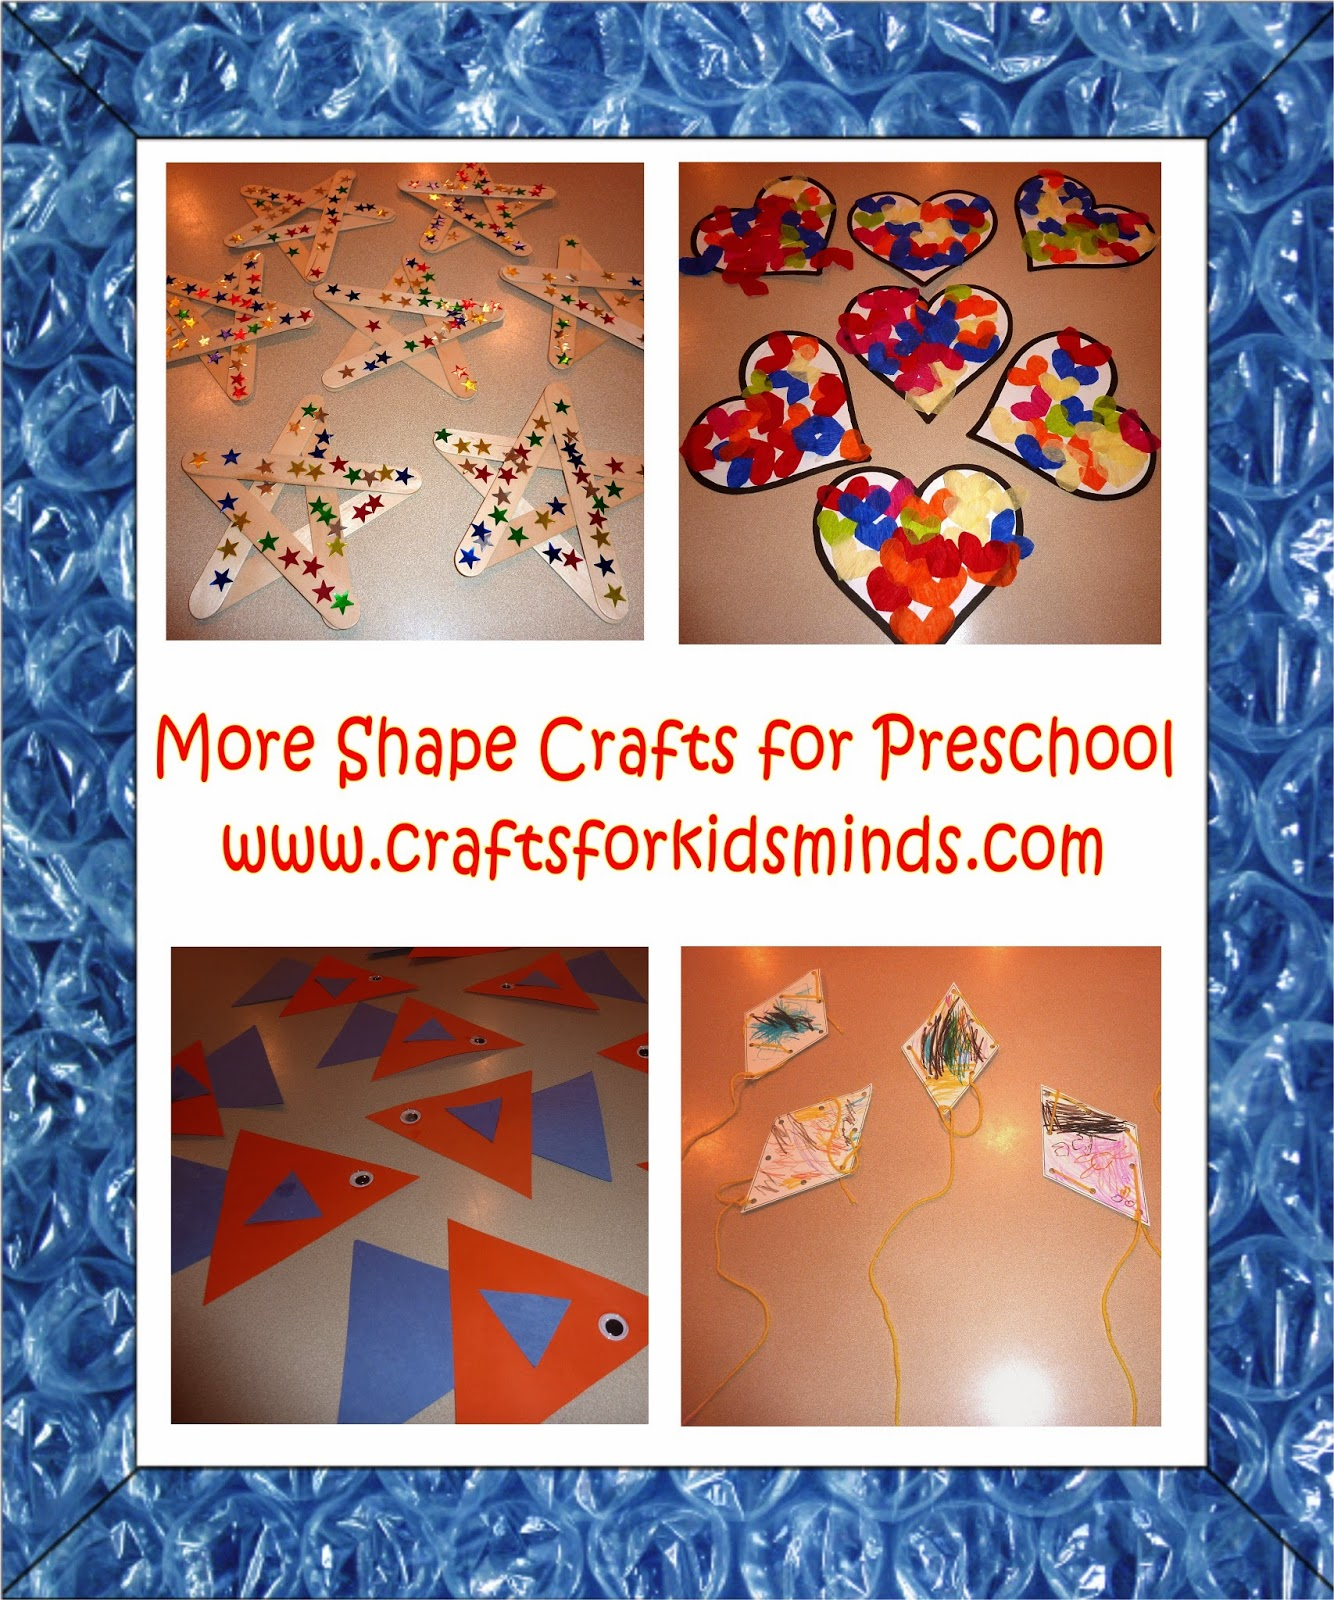 Crafts For Kids Minds More Shape Crafts For Preschoolers